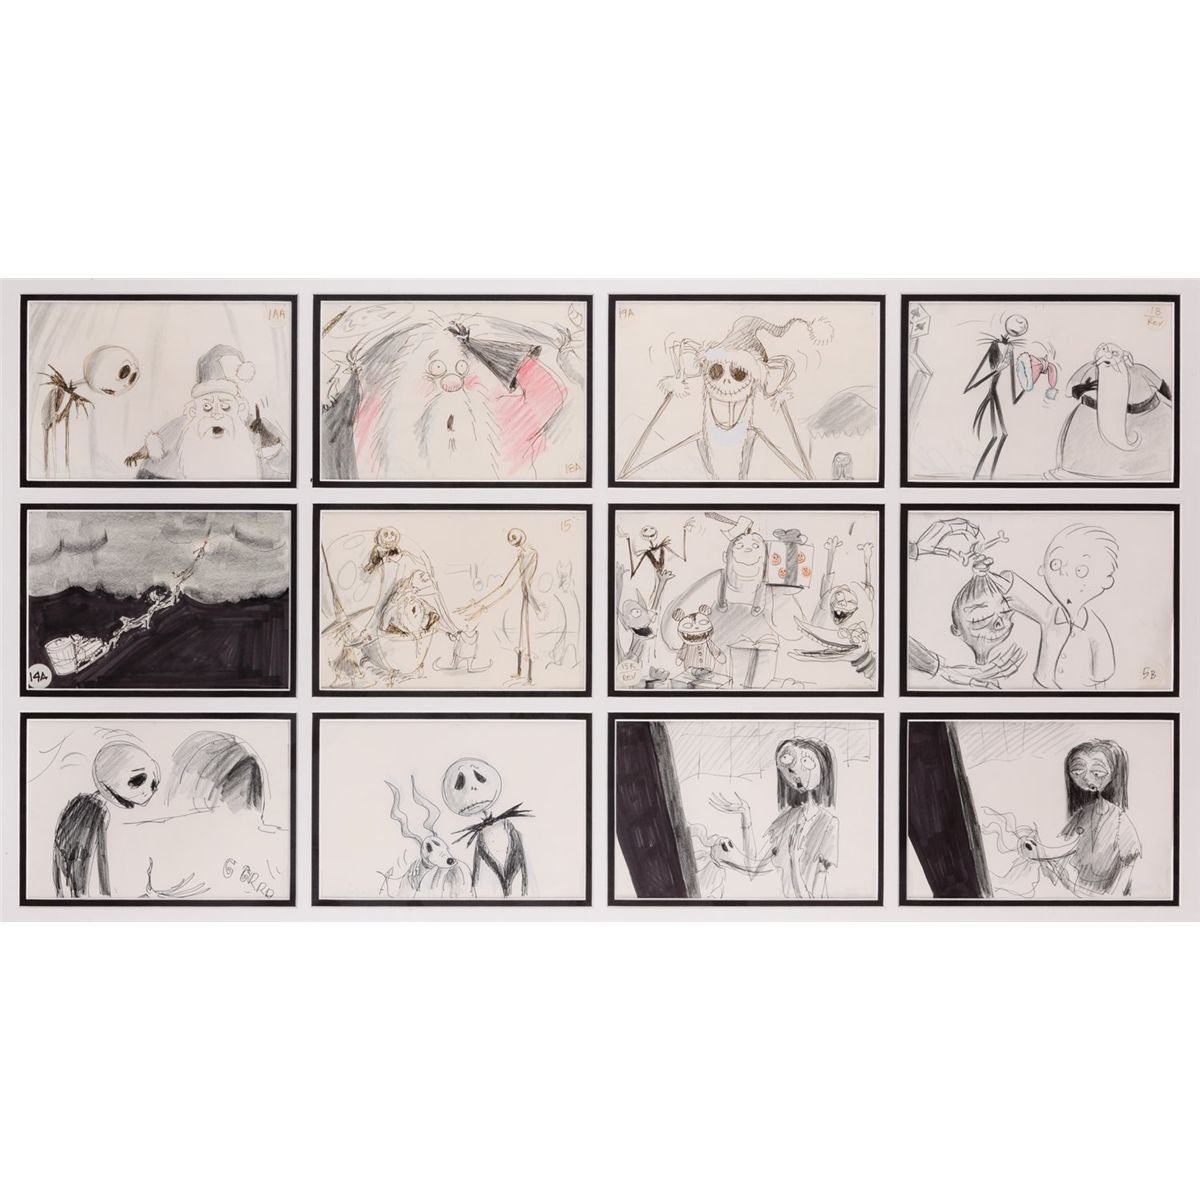 Collection of 12 storyboard panels from The Nightmare Before Christmas